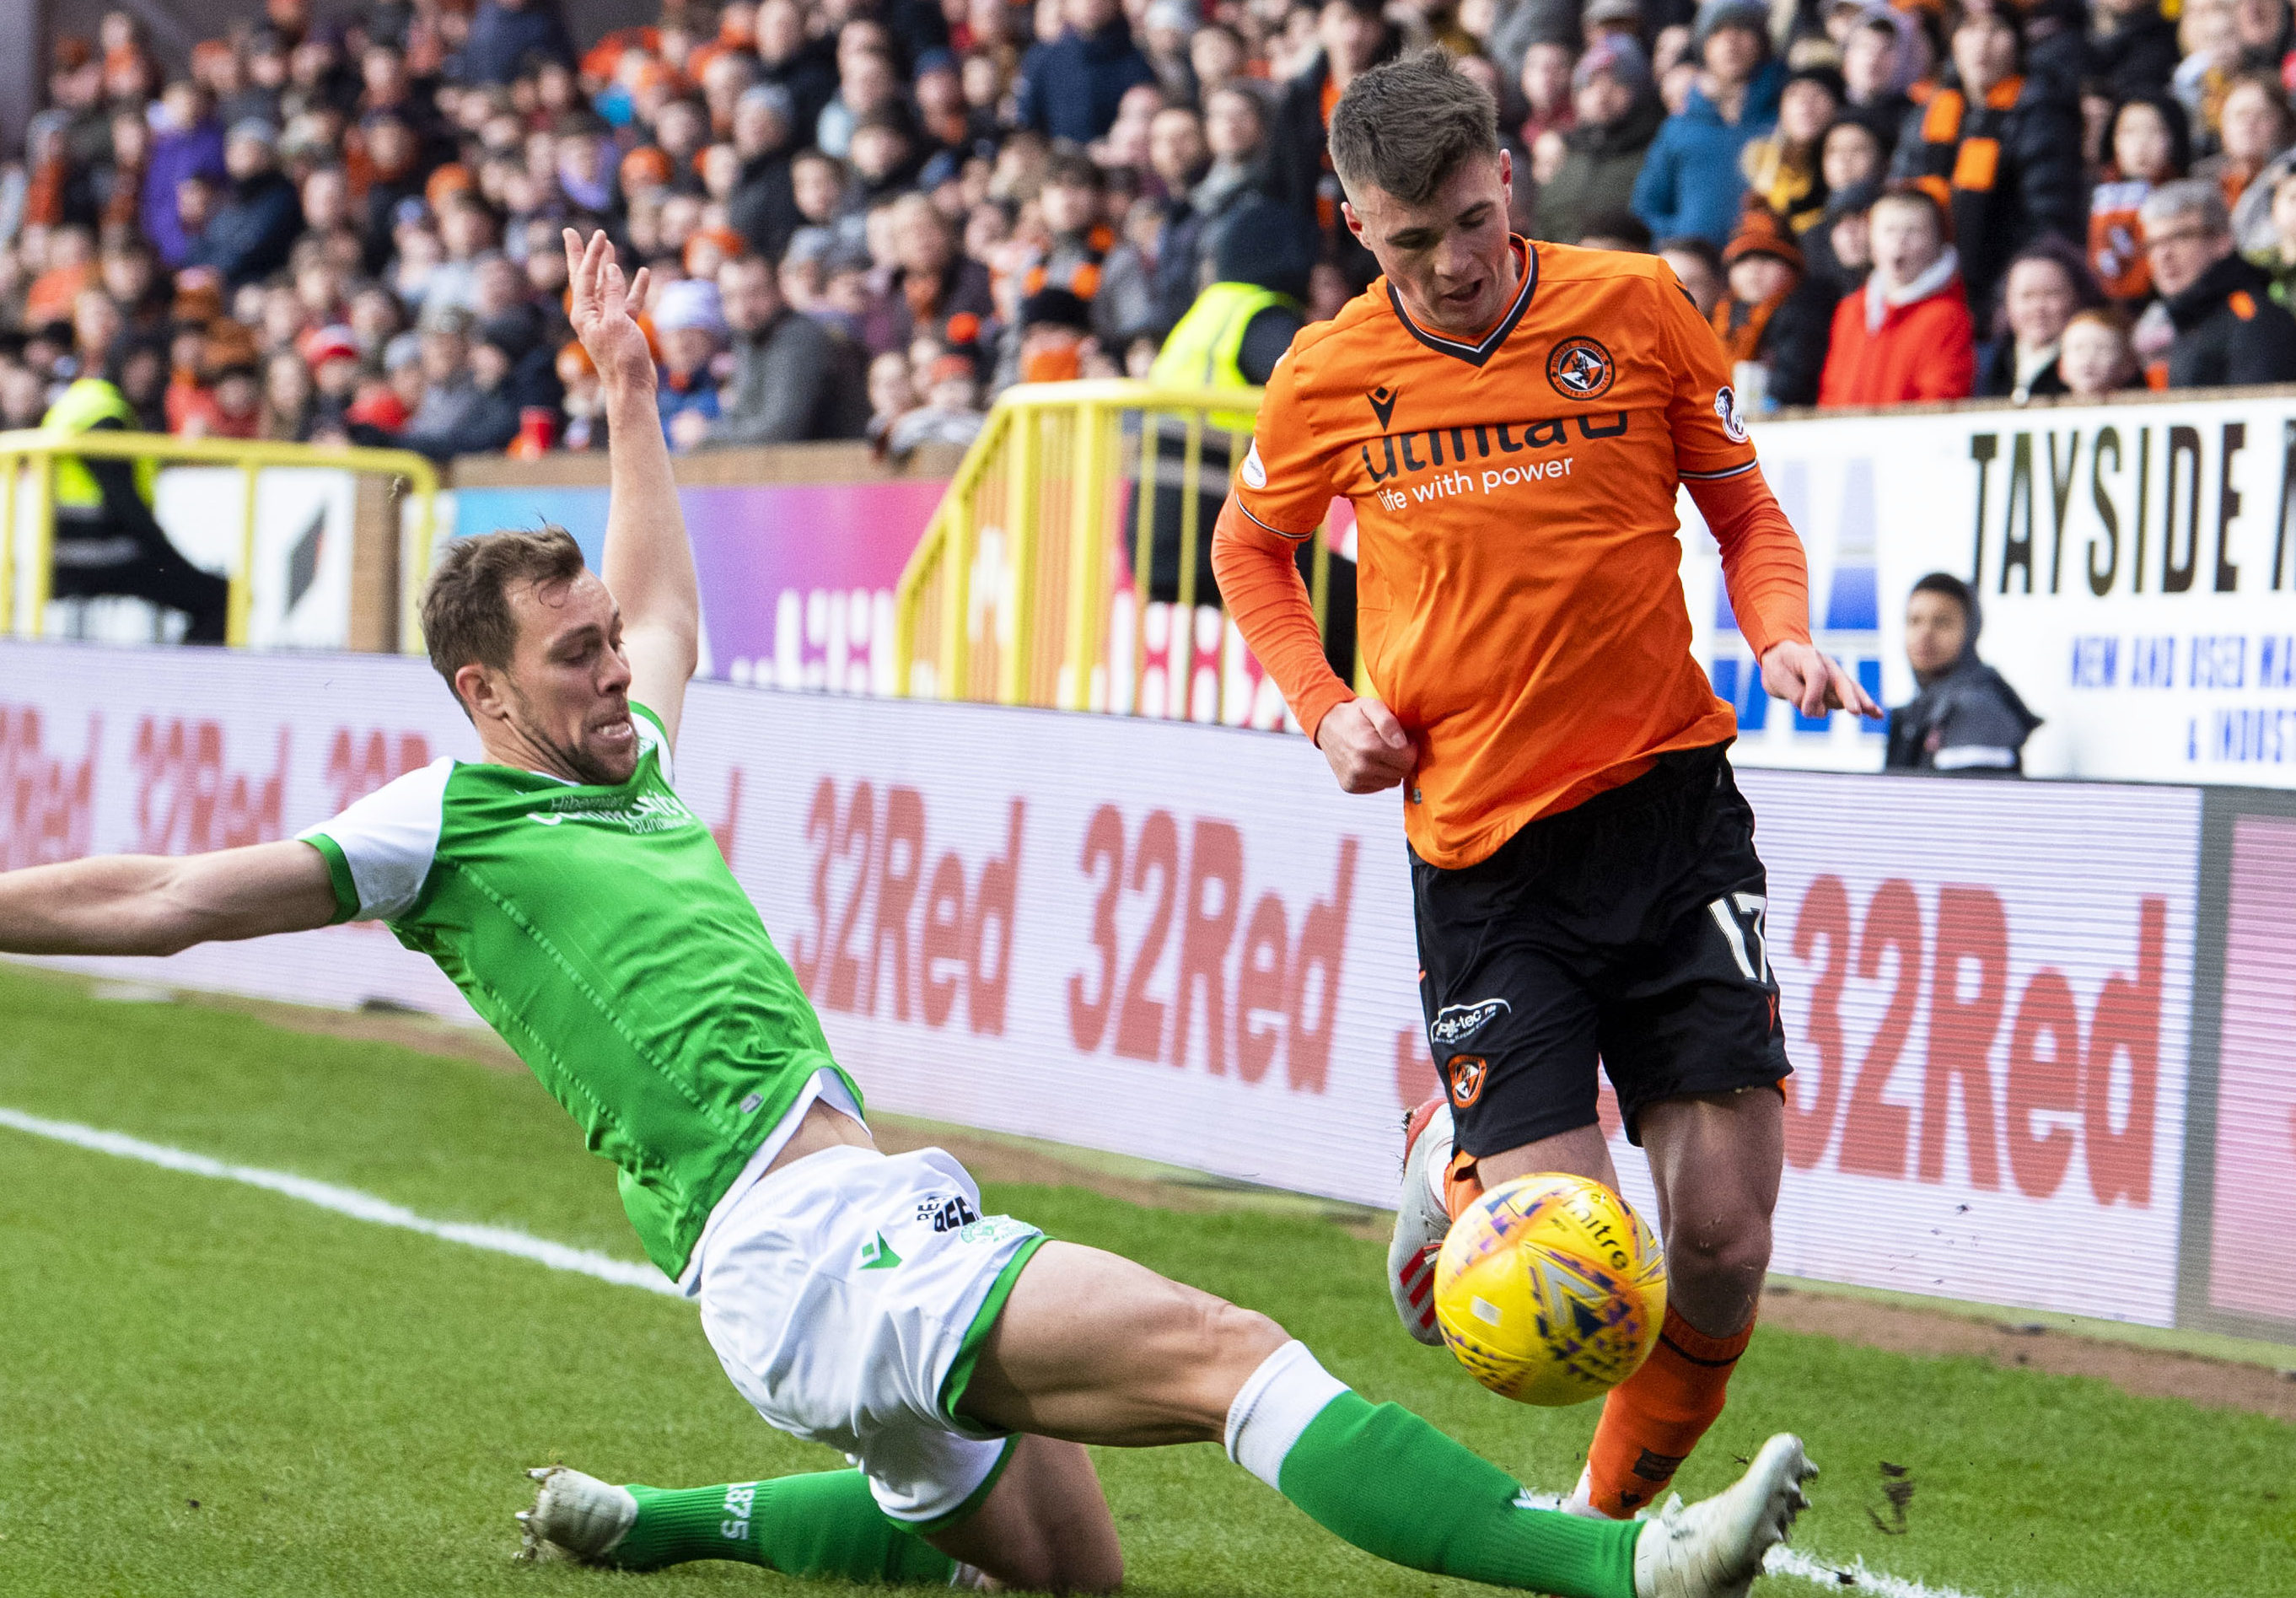 Hibernian's Steven Whittaker challenges Dundee United's Jame Robson.